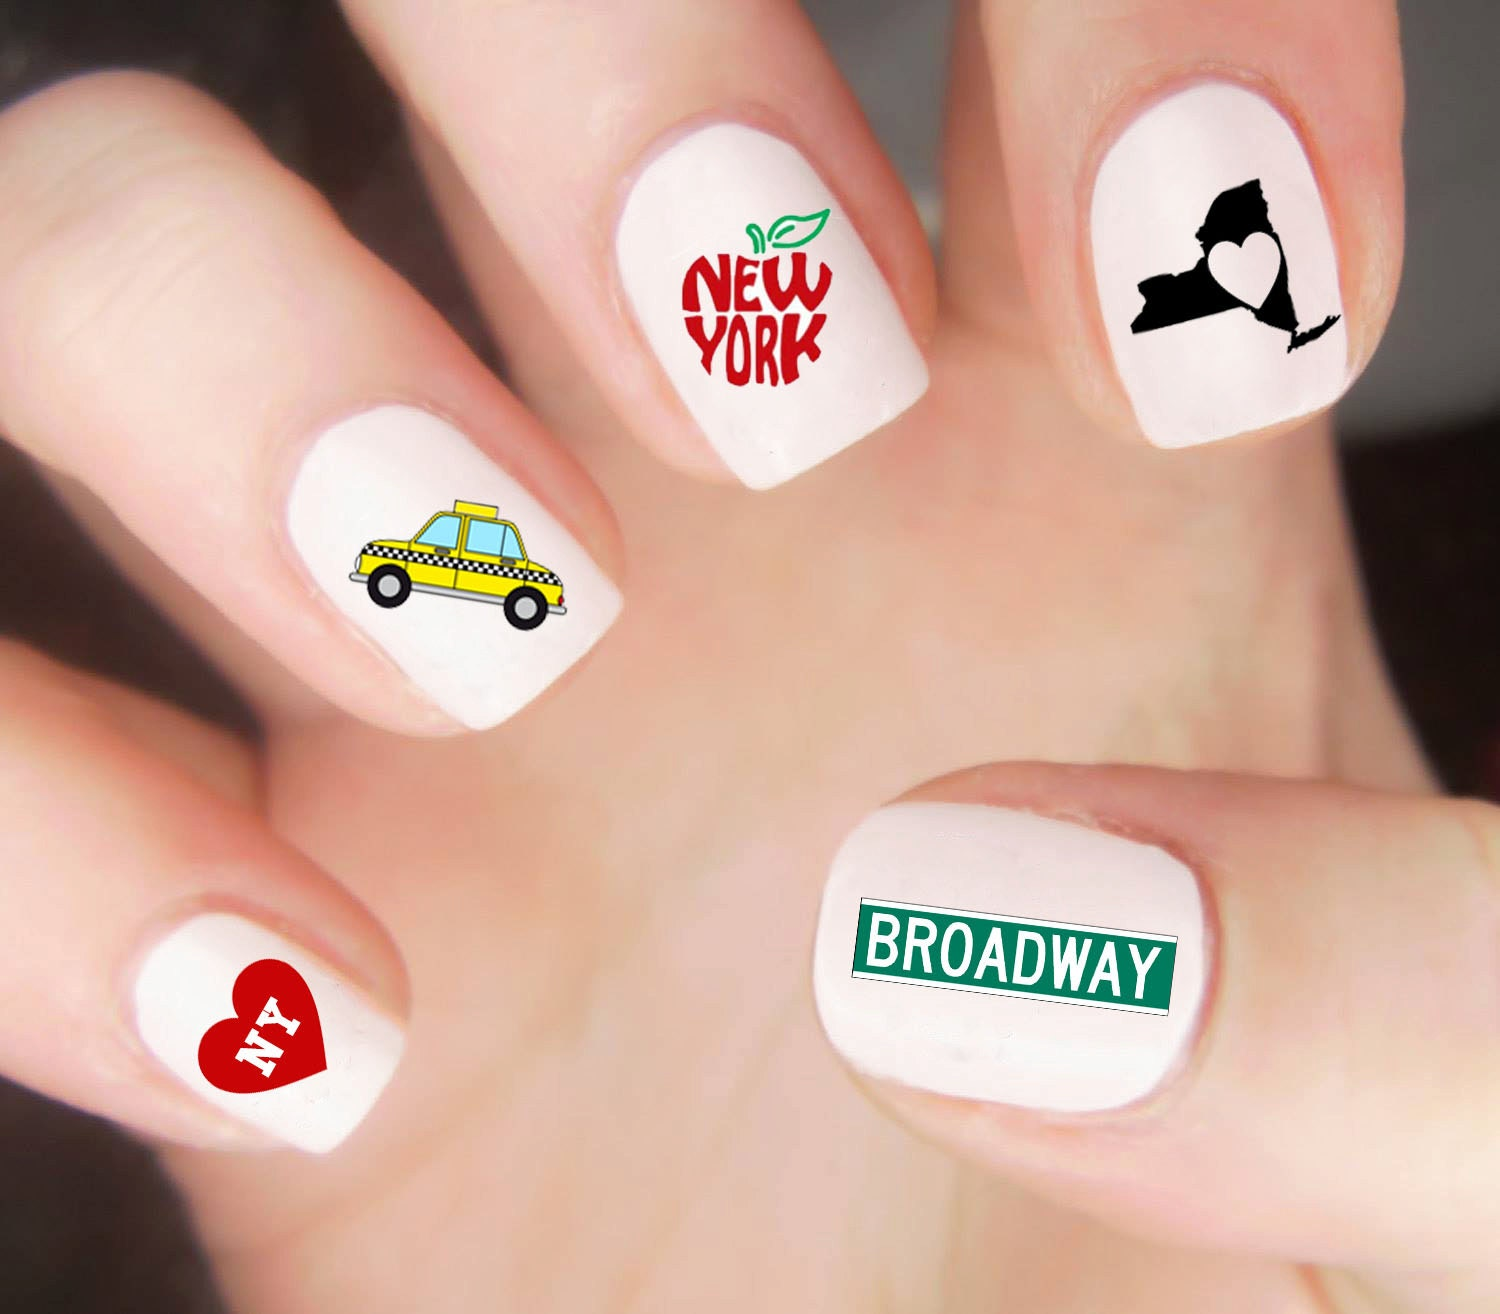 New york nail decals new york nail wraps new york nail art sold by lovebylunaco prinsesfo Images